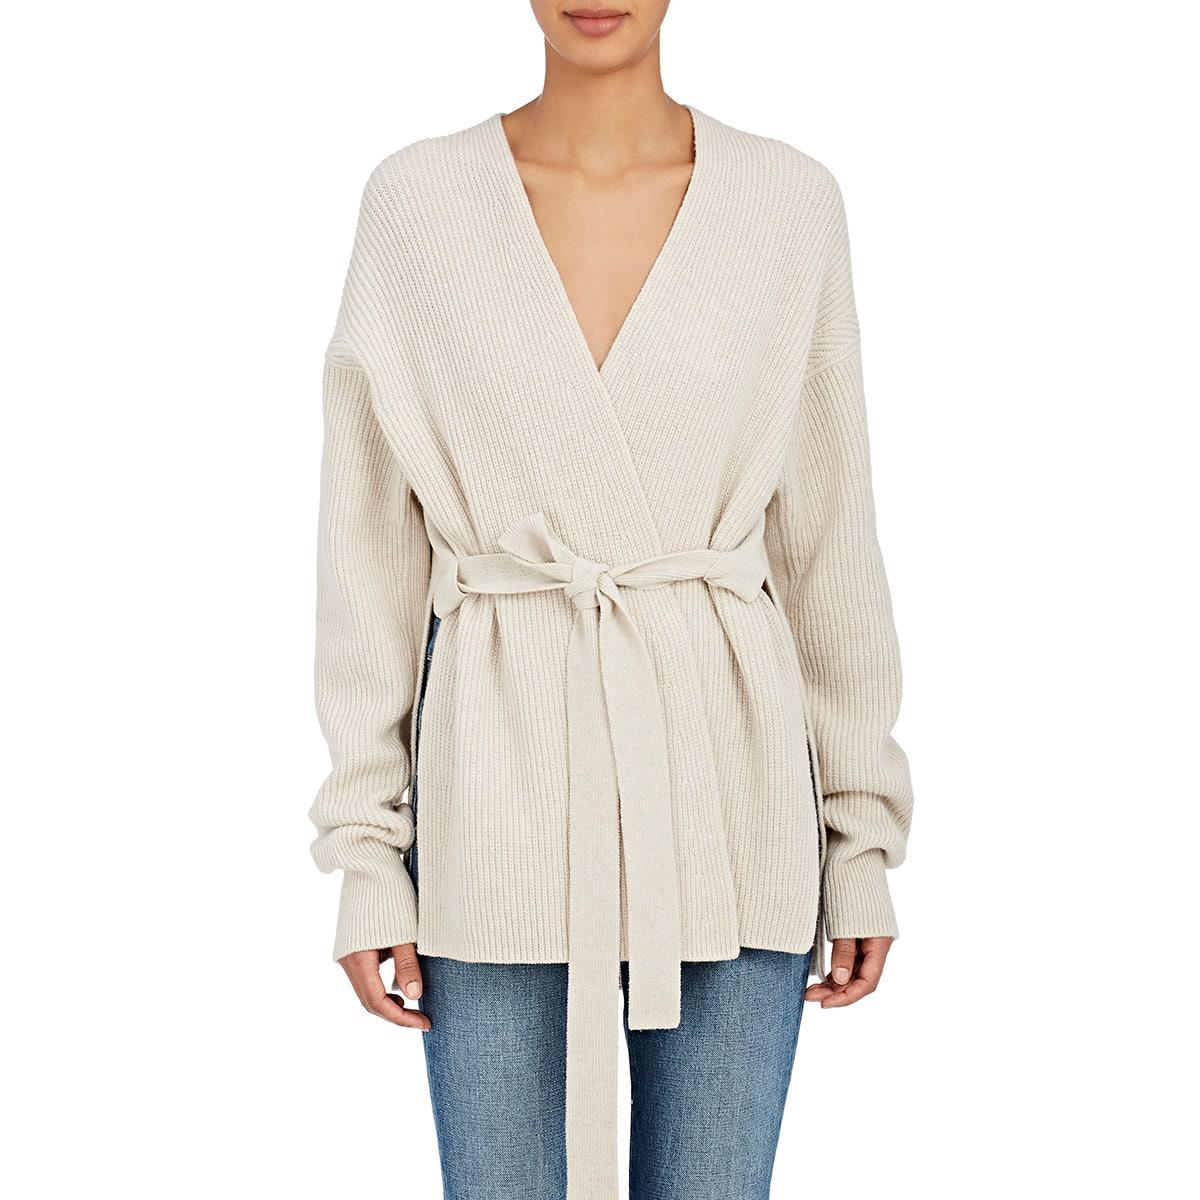 Helmut lang Cashmere Cardigan Sweater in White | Lyst